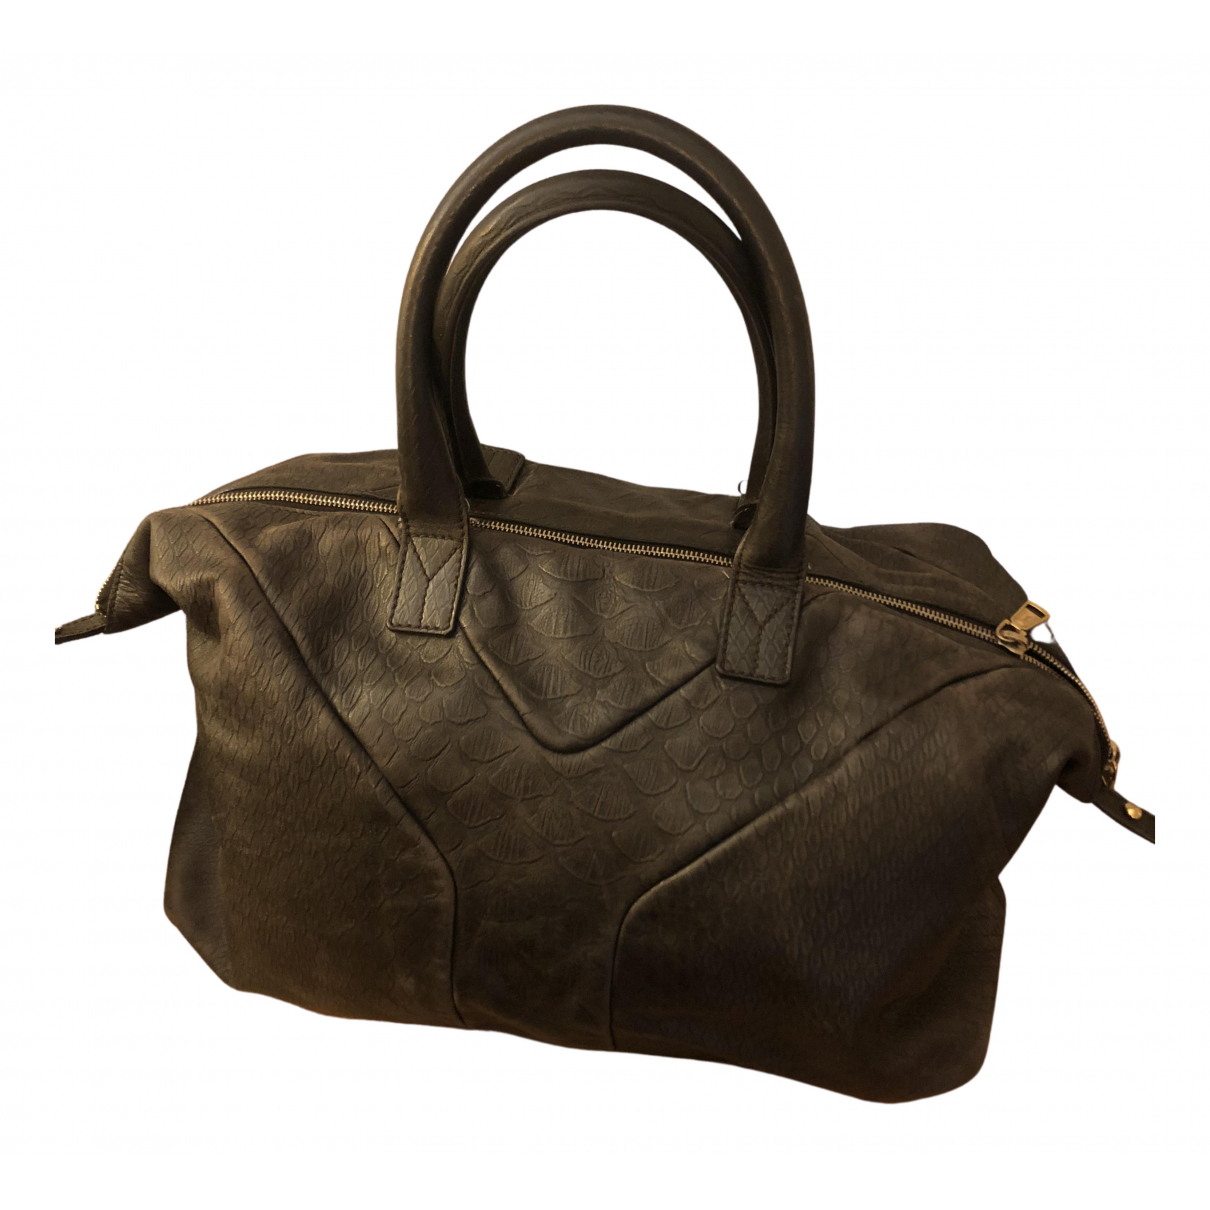 Yves Saint Laurent Easy Brown Leather handbag for Women N